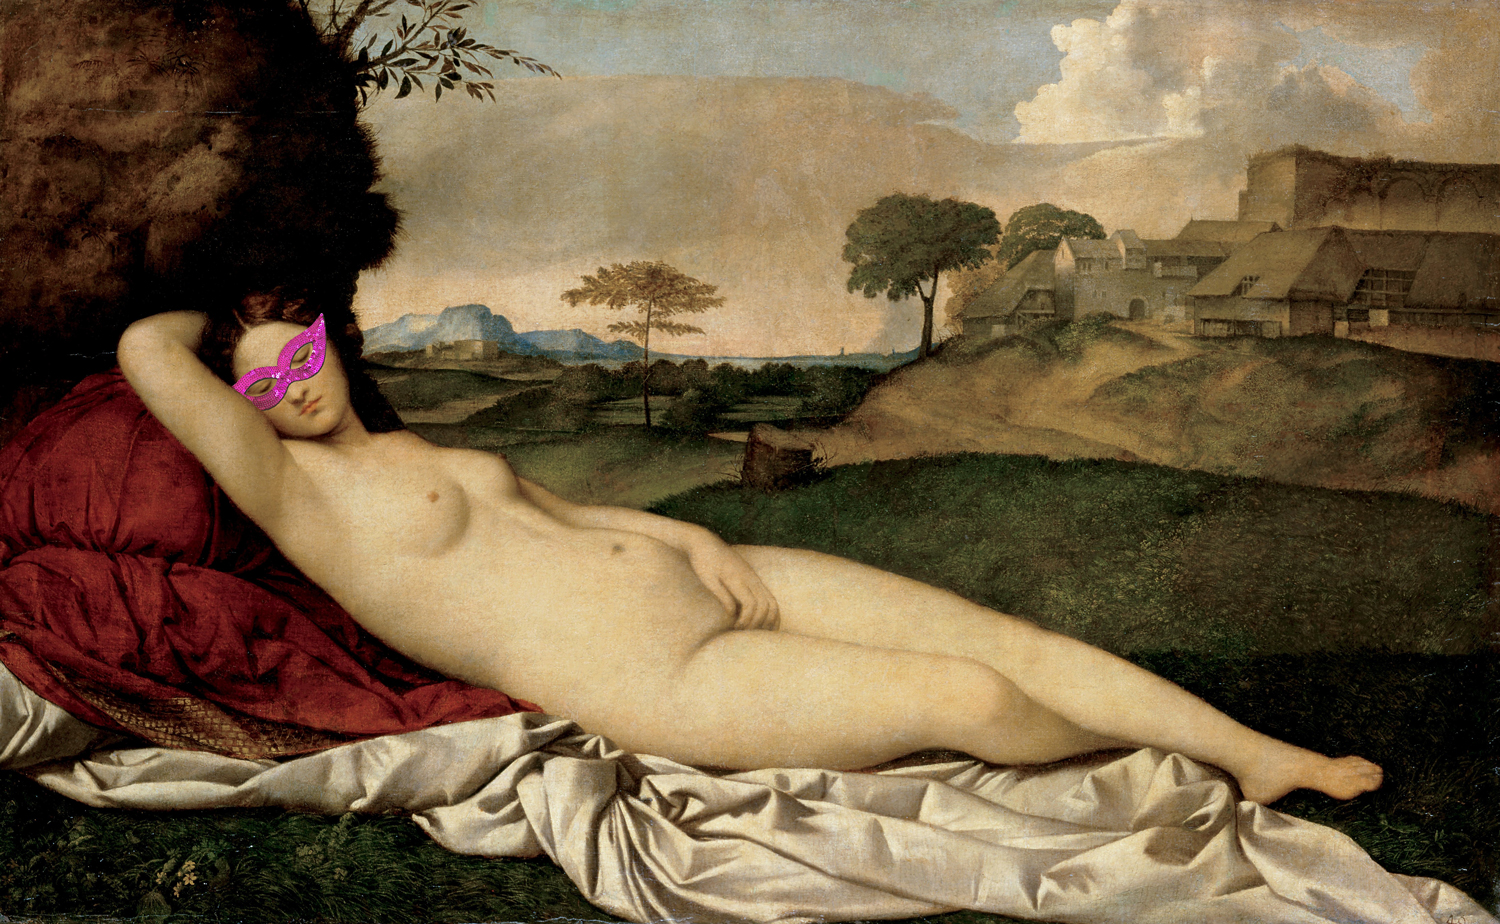 photo of Giorgione's Sleeping Venus (1508-10) reclining nude, with a pink masquerade mask photoshopped over the face